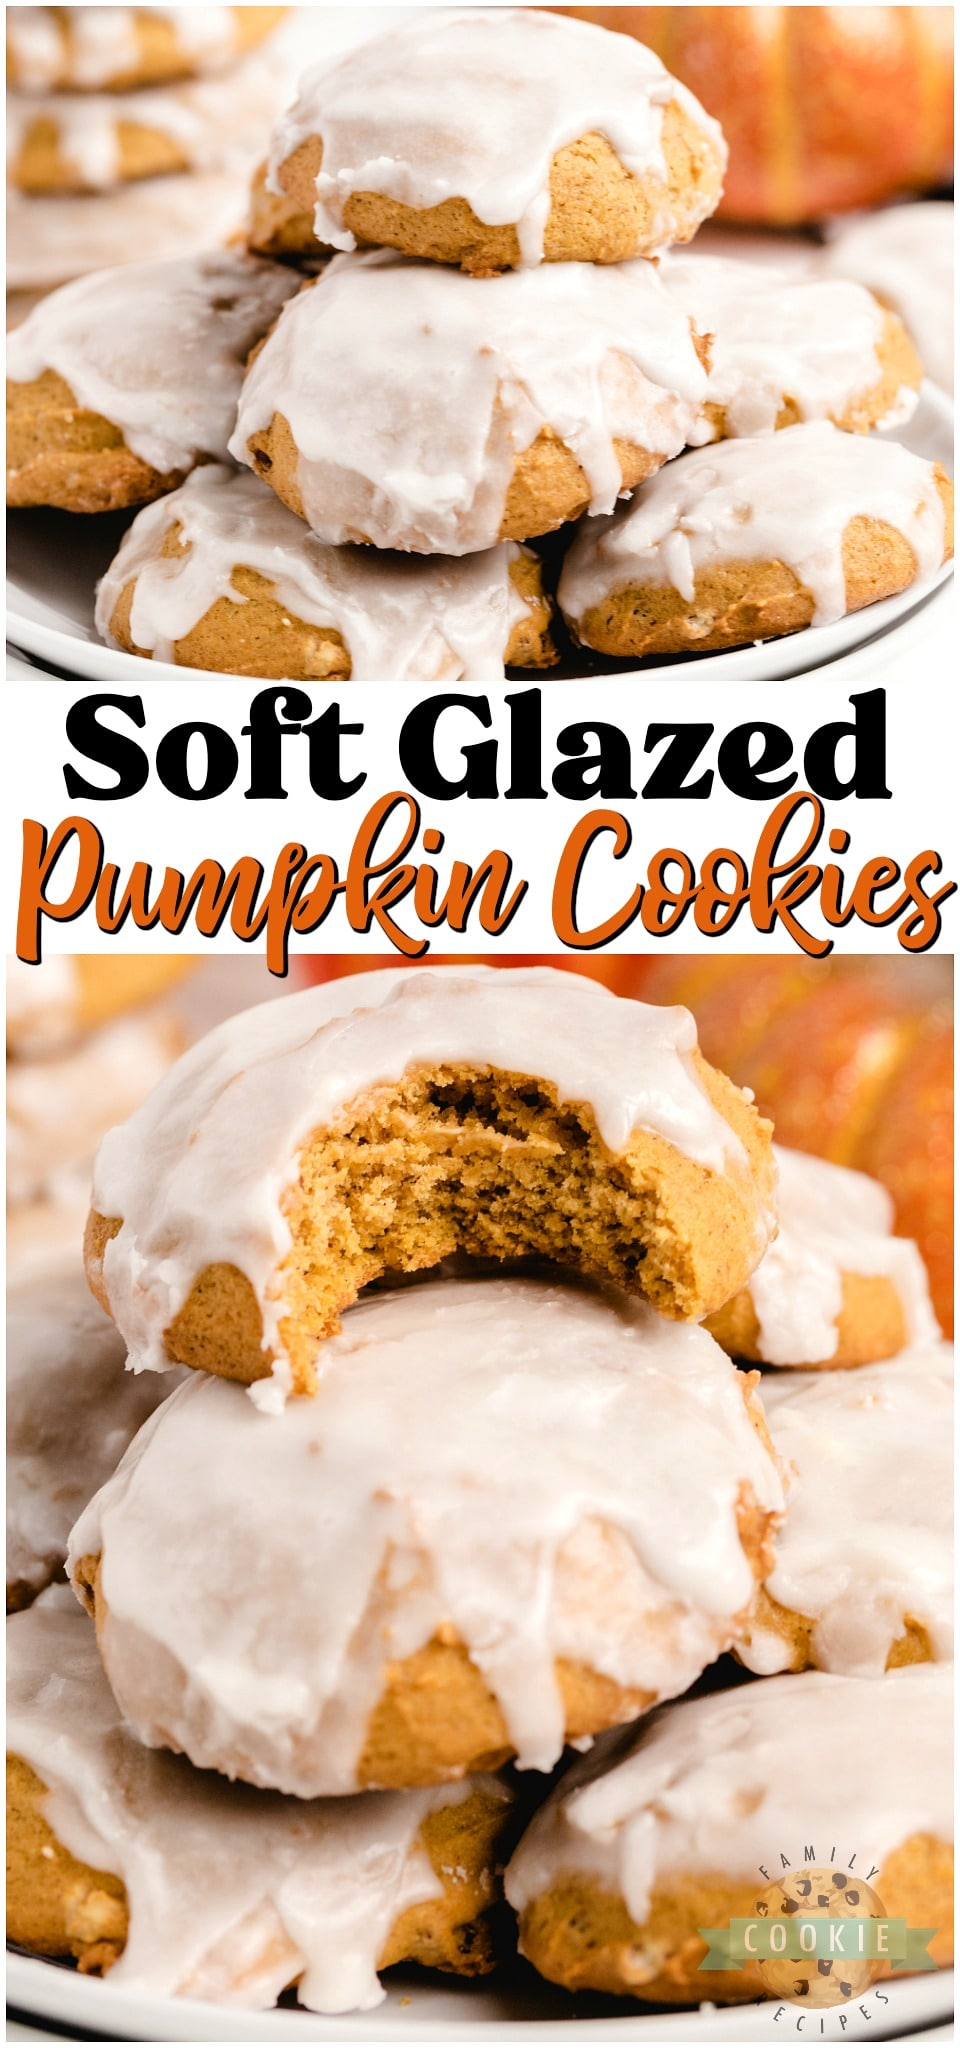 Iced Pumpkin Cookies are spiced with cinnamon, nutmeg & vanilla for a soft & sweet pumpkin dessert. These easy pillowy pumpkin cookies iced with smooth vanilla icing are perfect for pumpkin lovers! #pumpkin #cookies #baking #icing #dessert #easyrecipe from FAMILY COOKIE RECIPES via @familycookierecipes